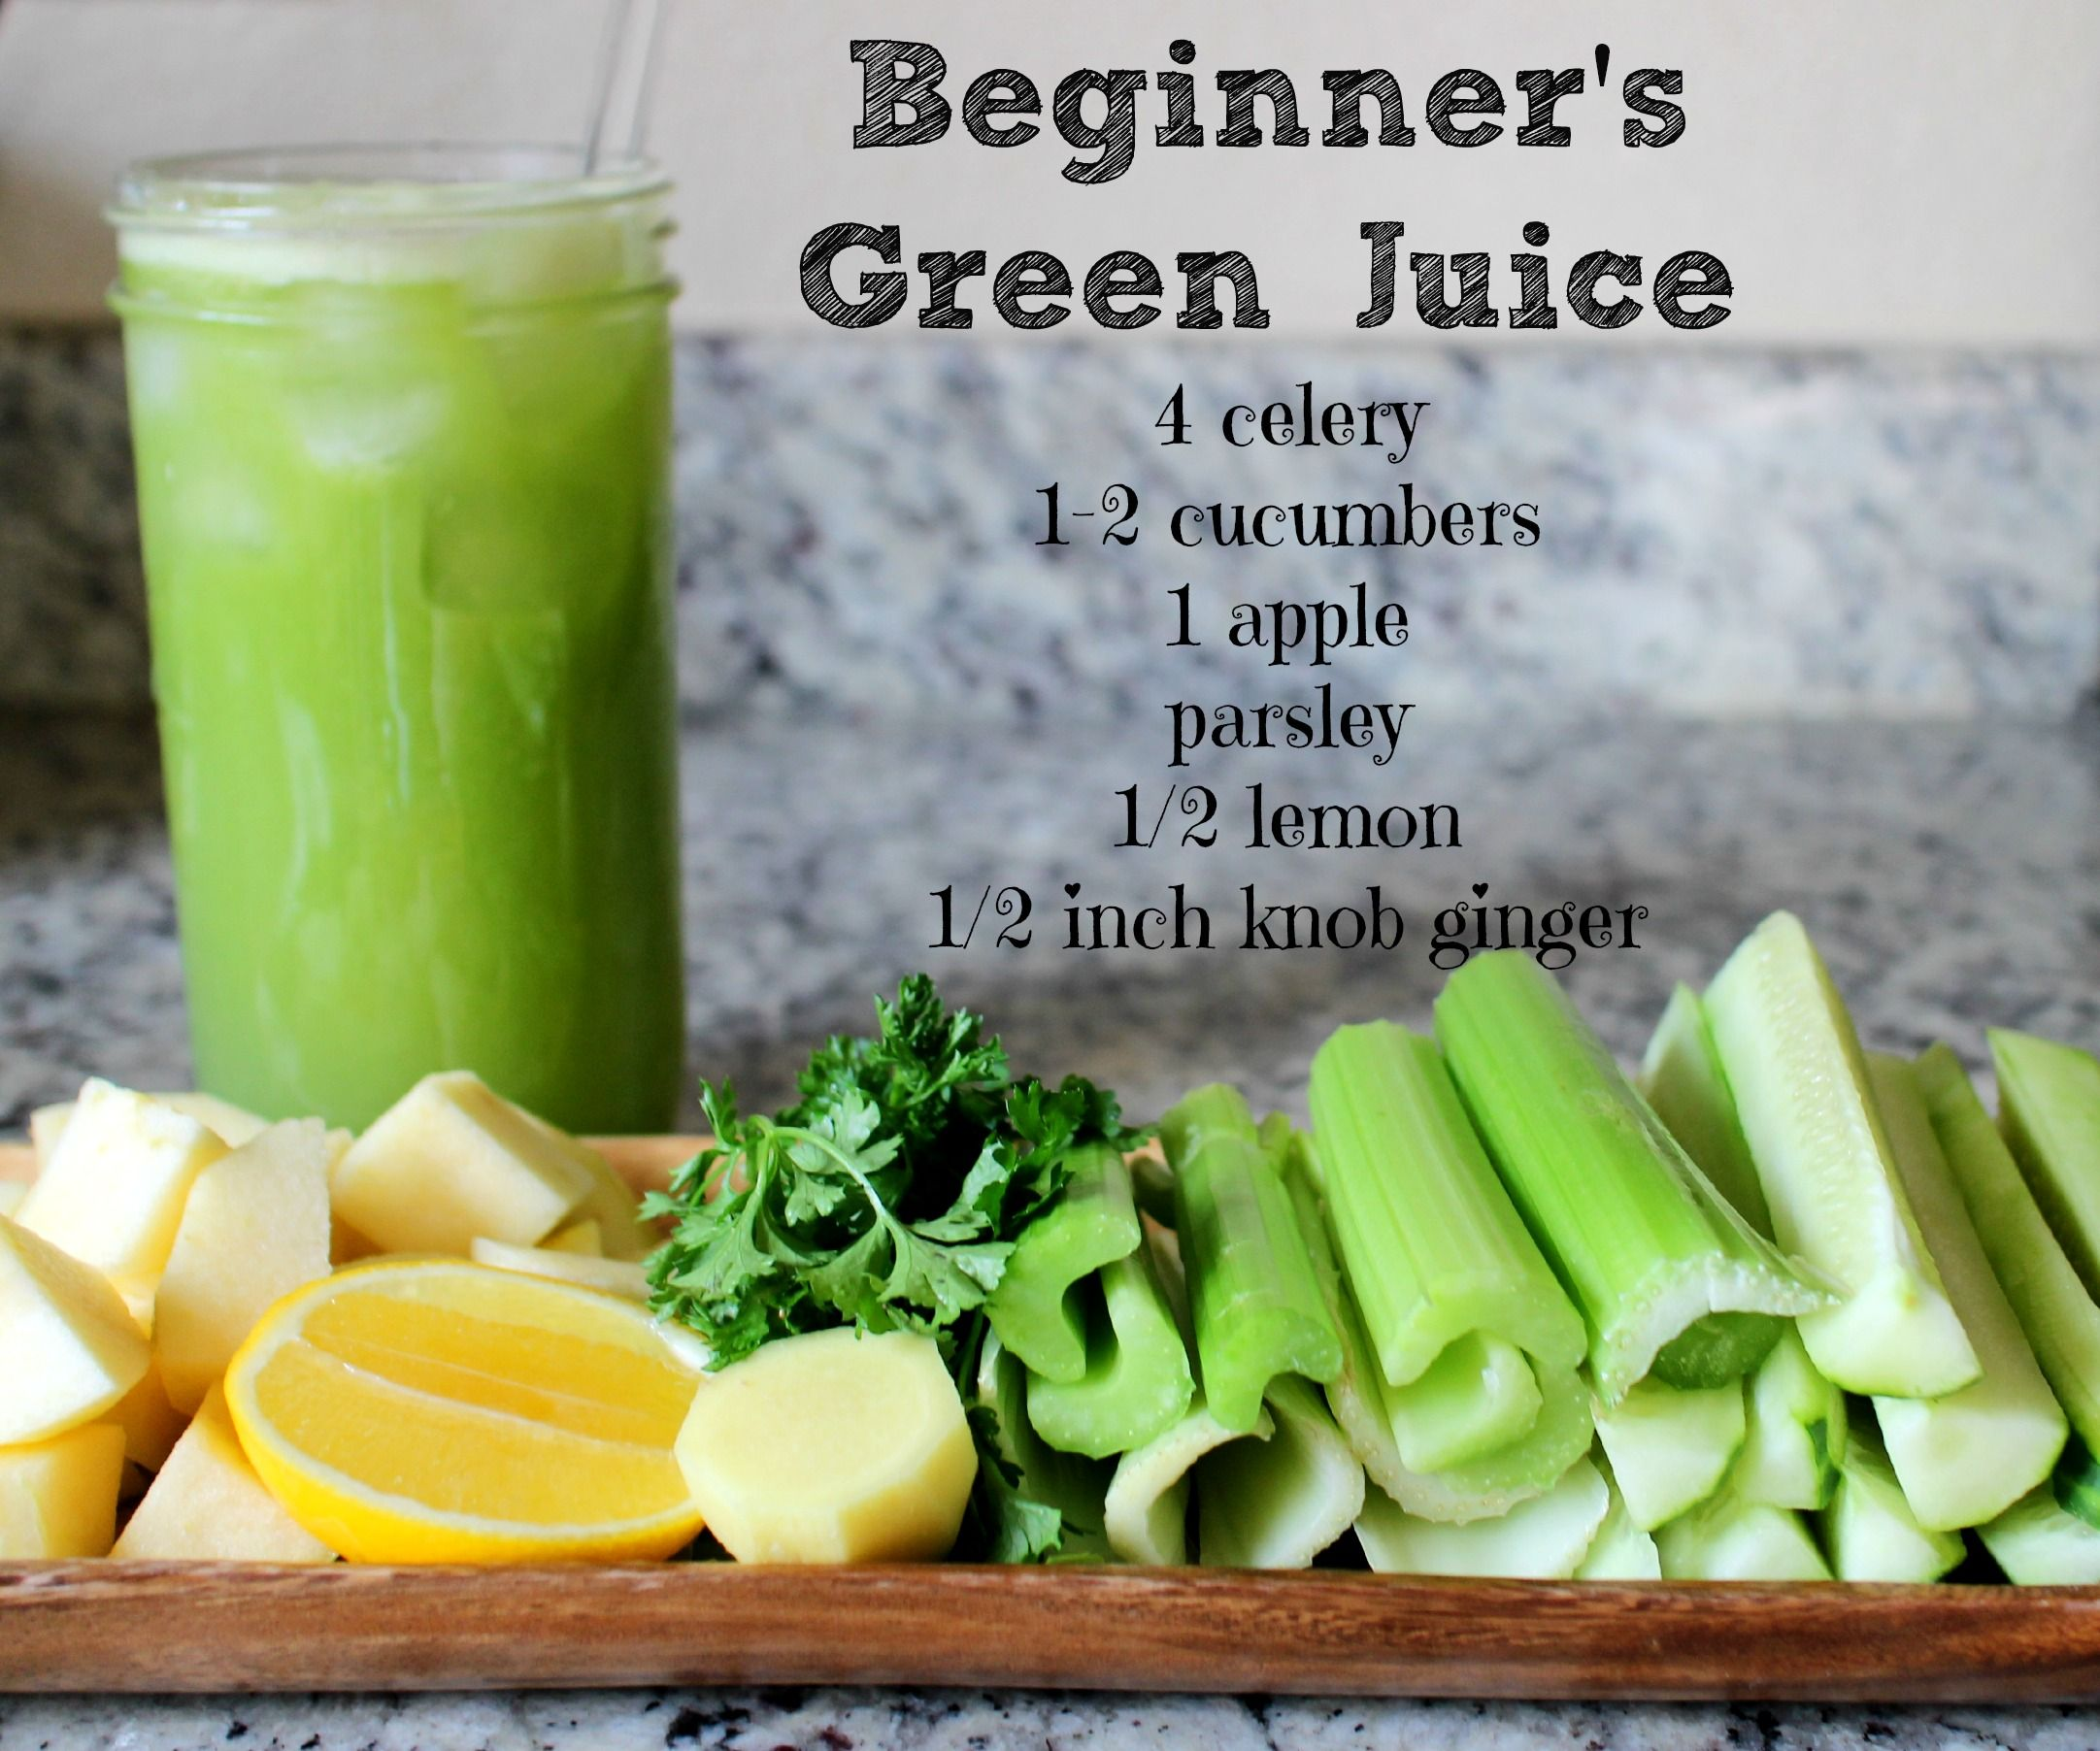 Green Juice Recipe For Beginners. Looks Yummy And